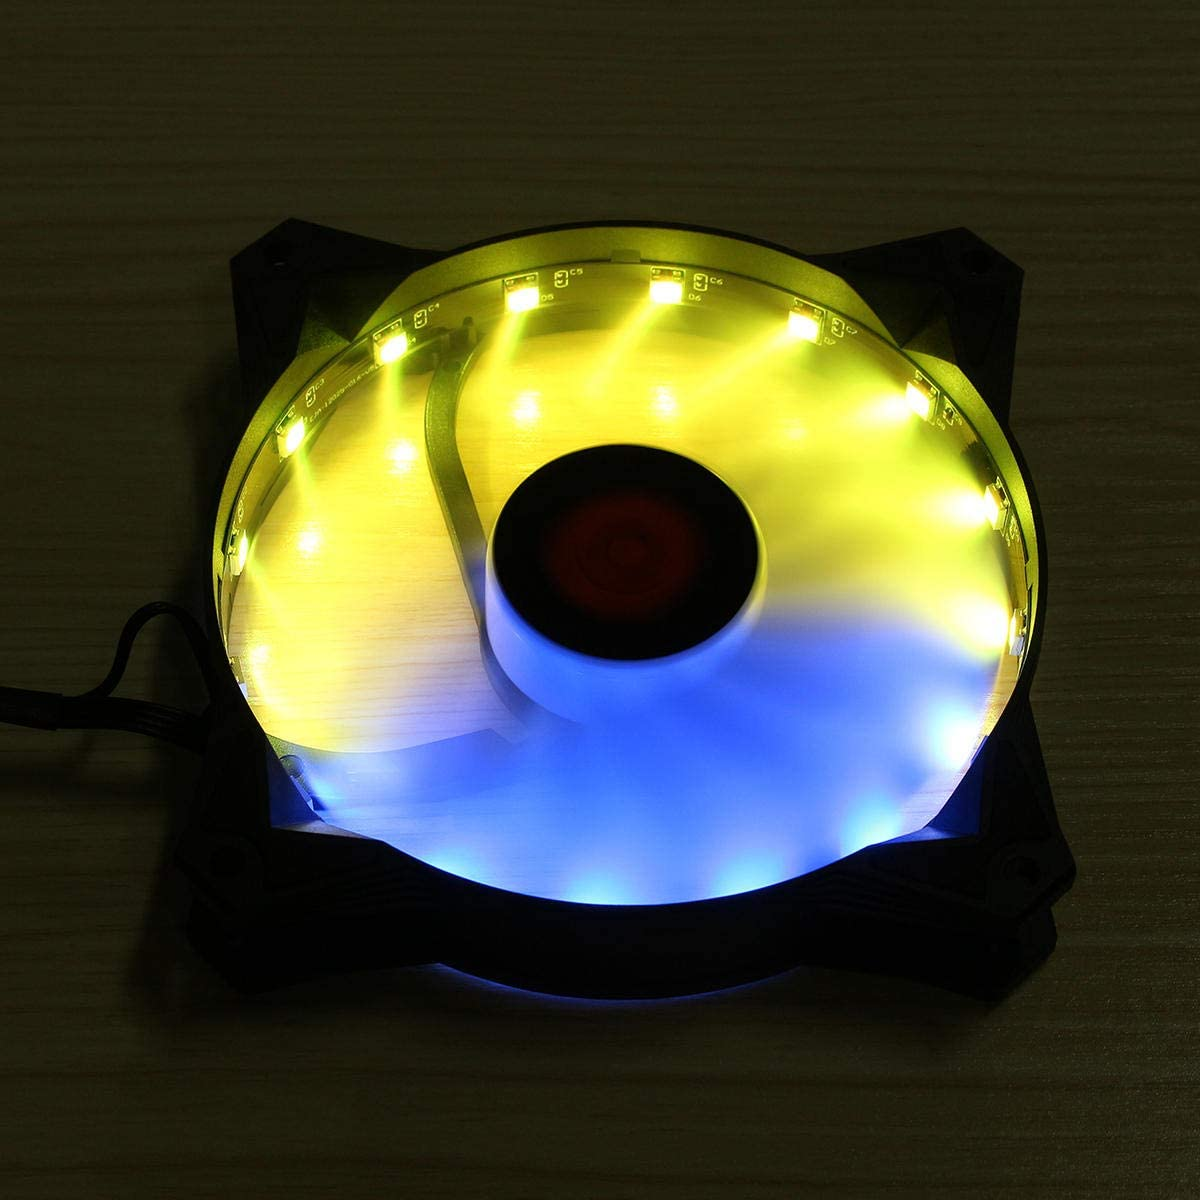 Coolmoon 1PCS 120mm RGB Adjustable LED Light Computer Cooling Fan with Remote Control